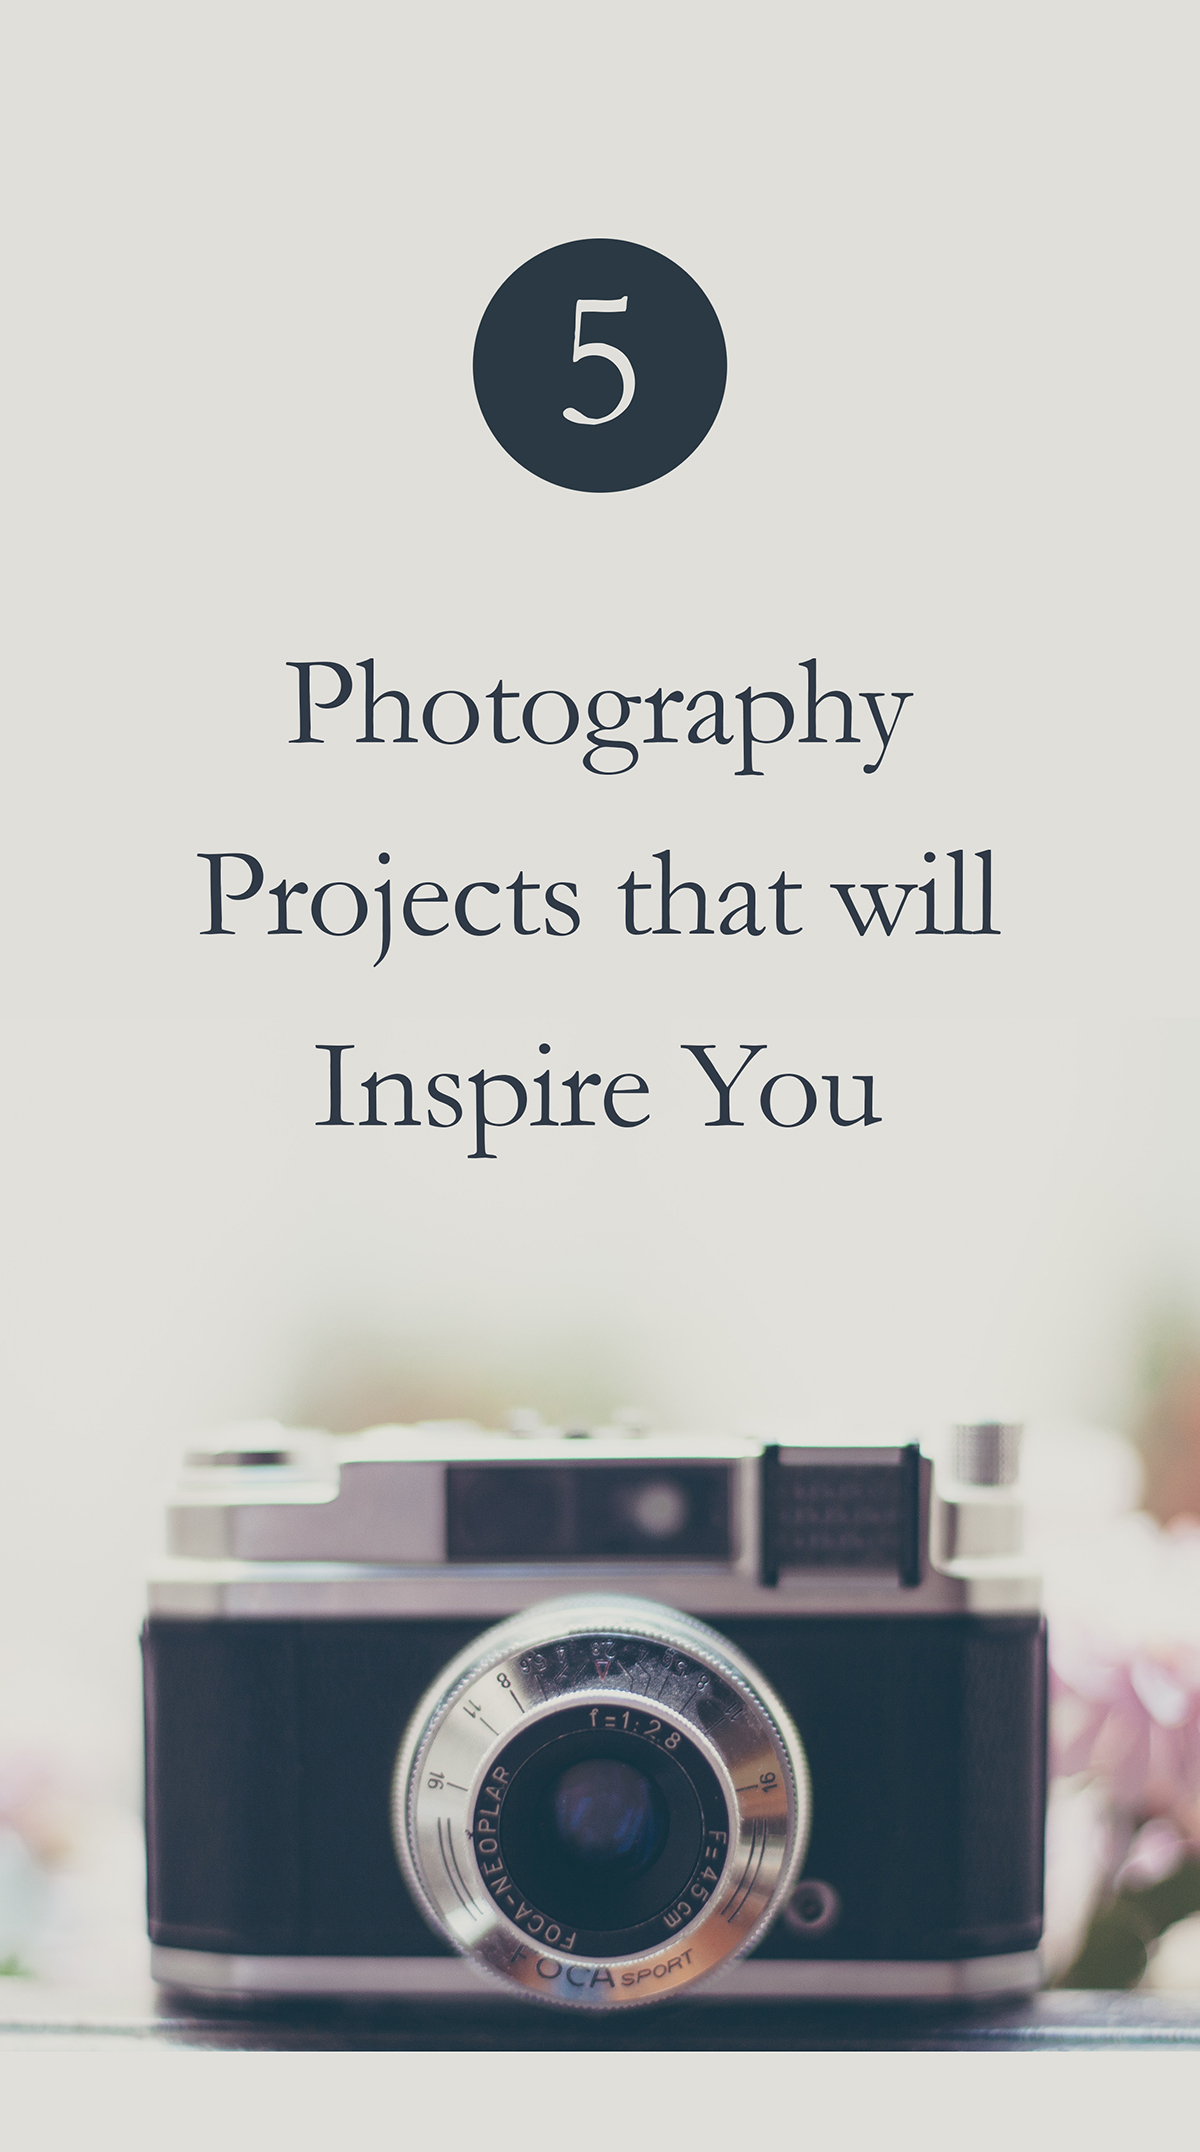 Here are 5 photography projects that will inspire you to document life's little moments and help you brush up on your photography skills along the way!